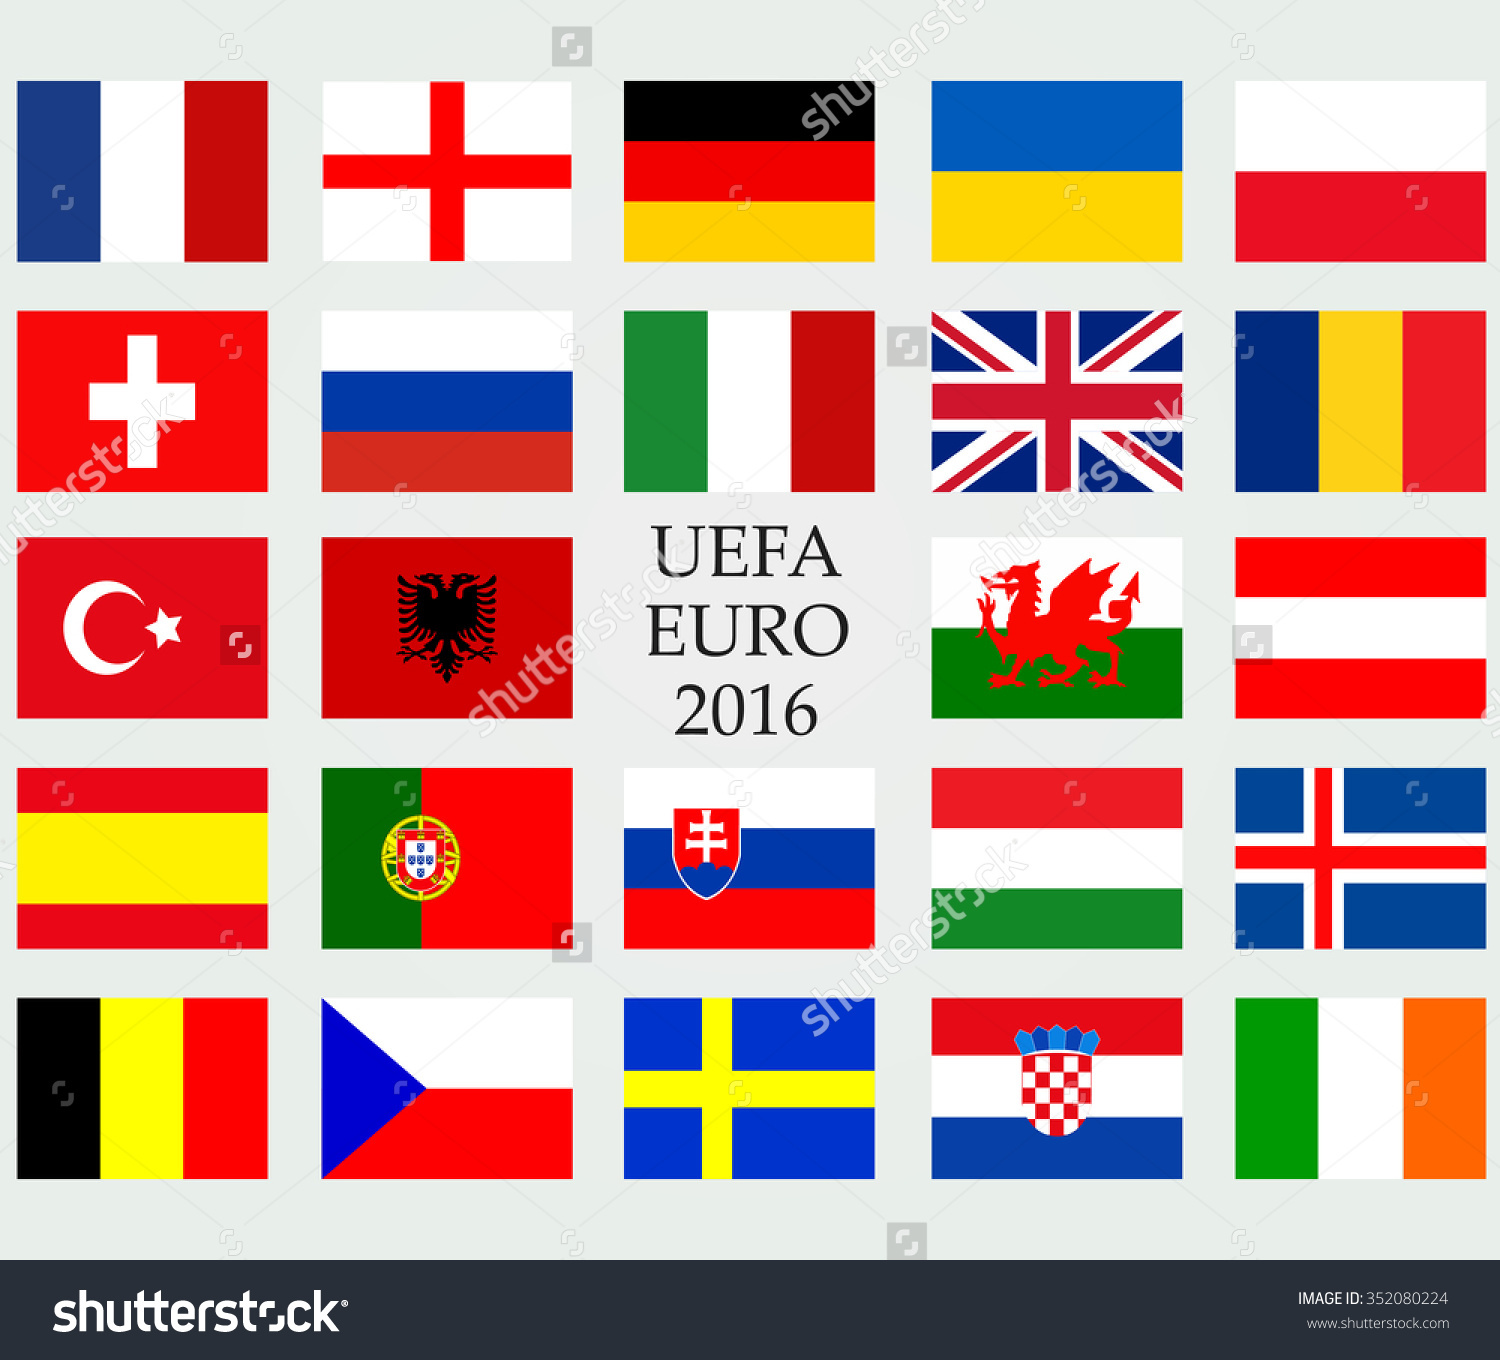 Uefa Euro 2016 Member Countries Vector Stock Vector 352080224.